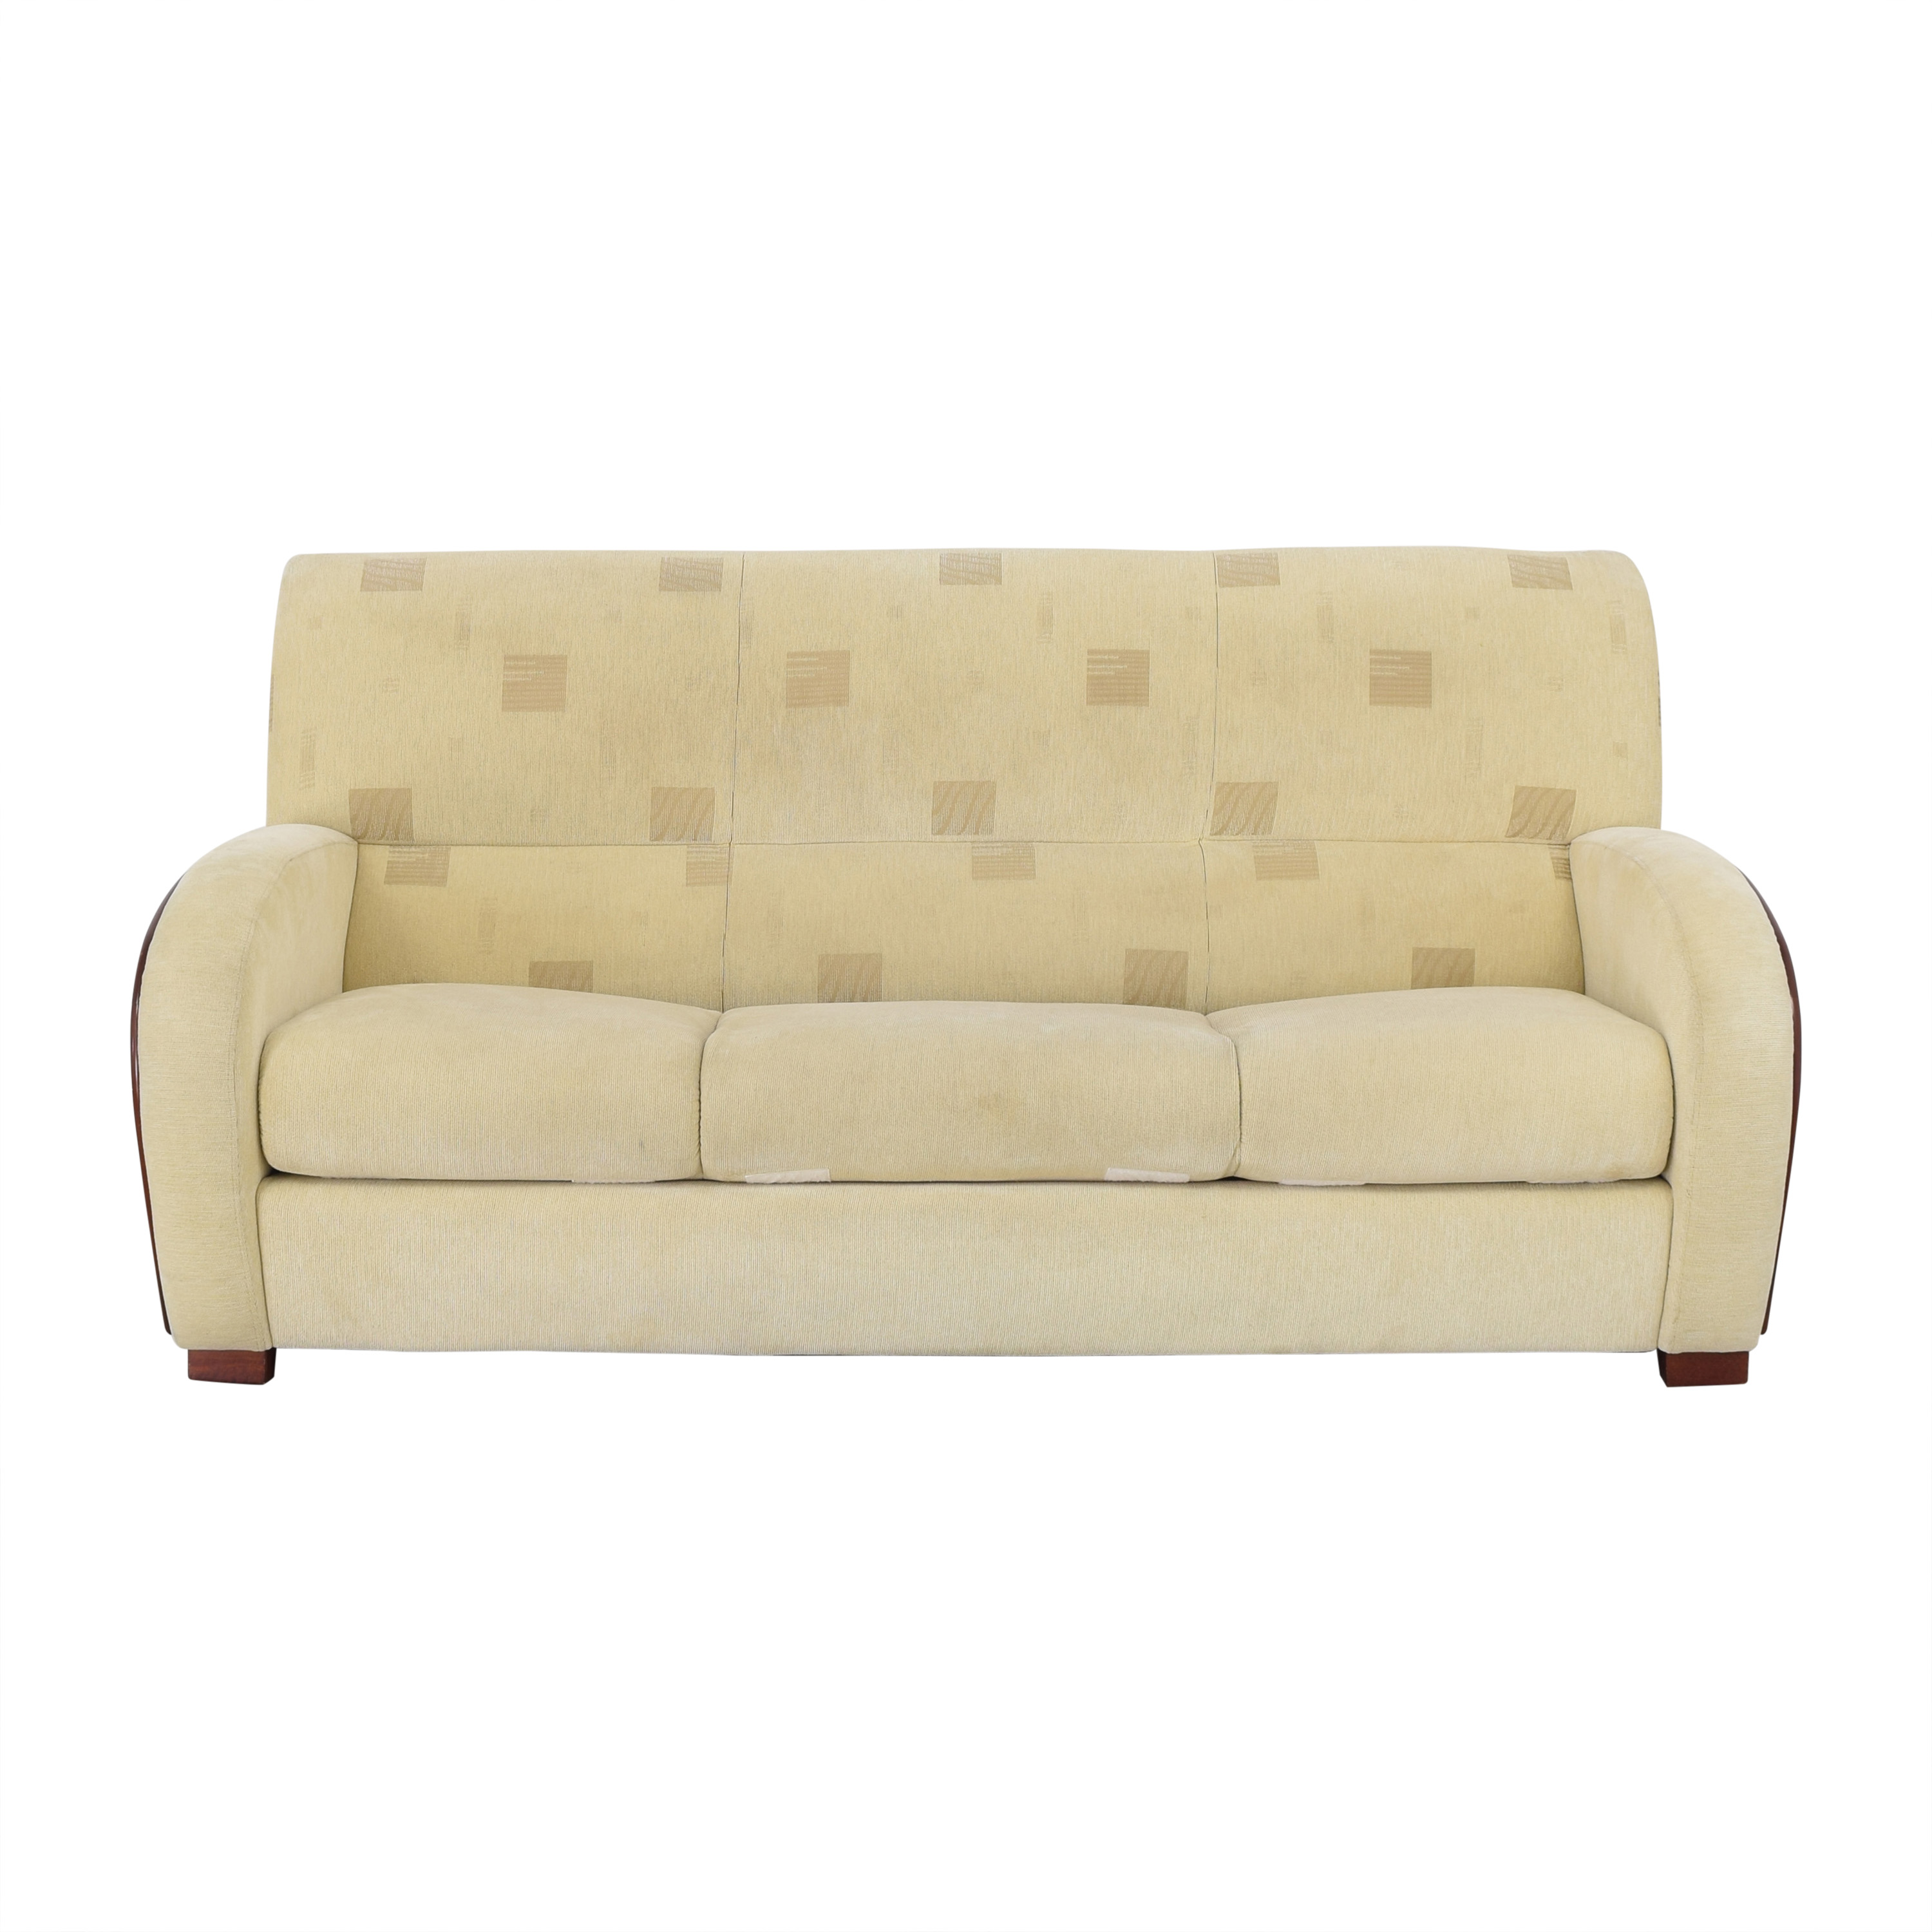 Vintage Style Tufted Back Sofa Bed / Sofa Beds